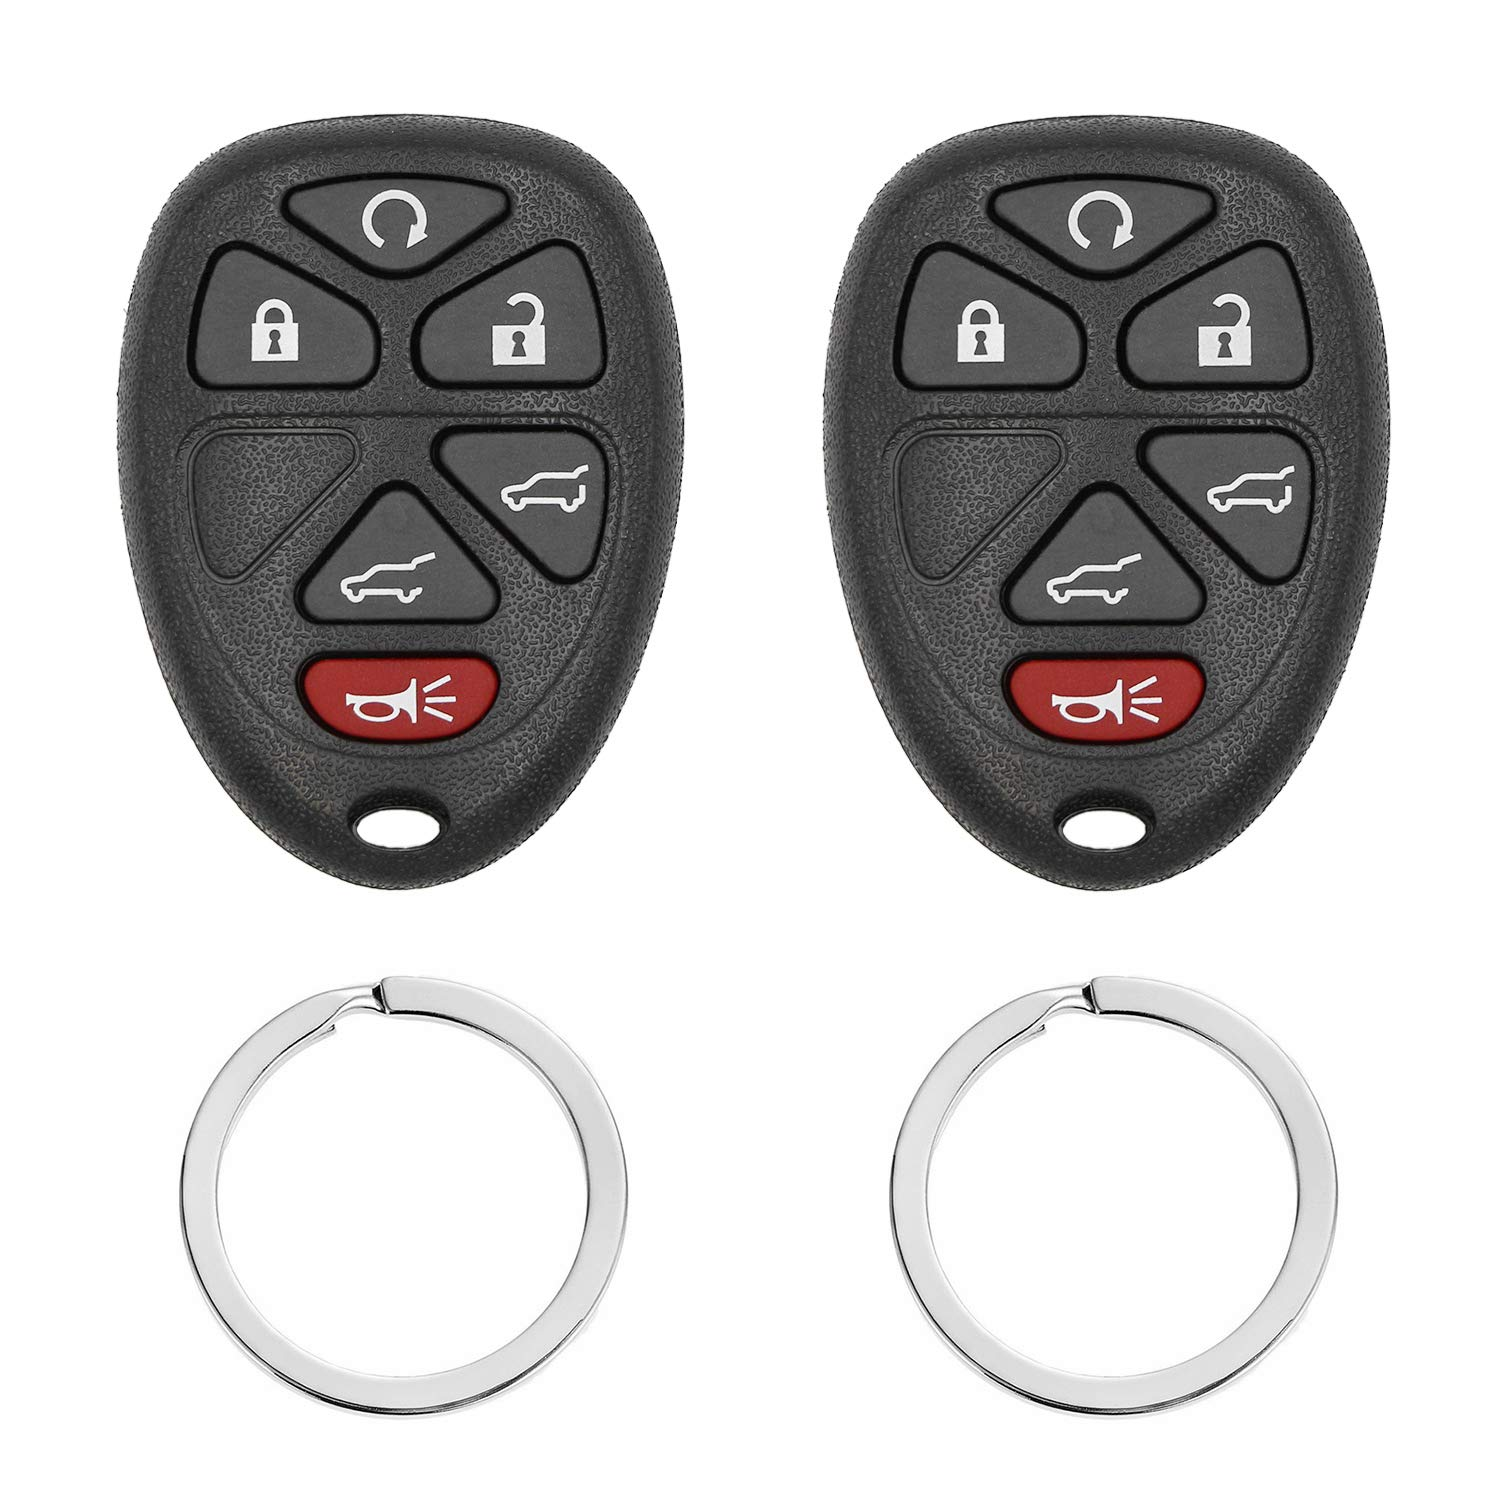 Keyless Entry Car Key Fob Replaces# - 15913427 OUC60270 OUC60221,- That Use 6 Button, Fits Cadillac Escalade Chevrolet Suburban Tahoe GMC Yukon Chevrolet Traverse (Pack of 2)